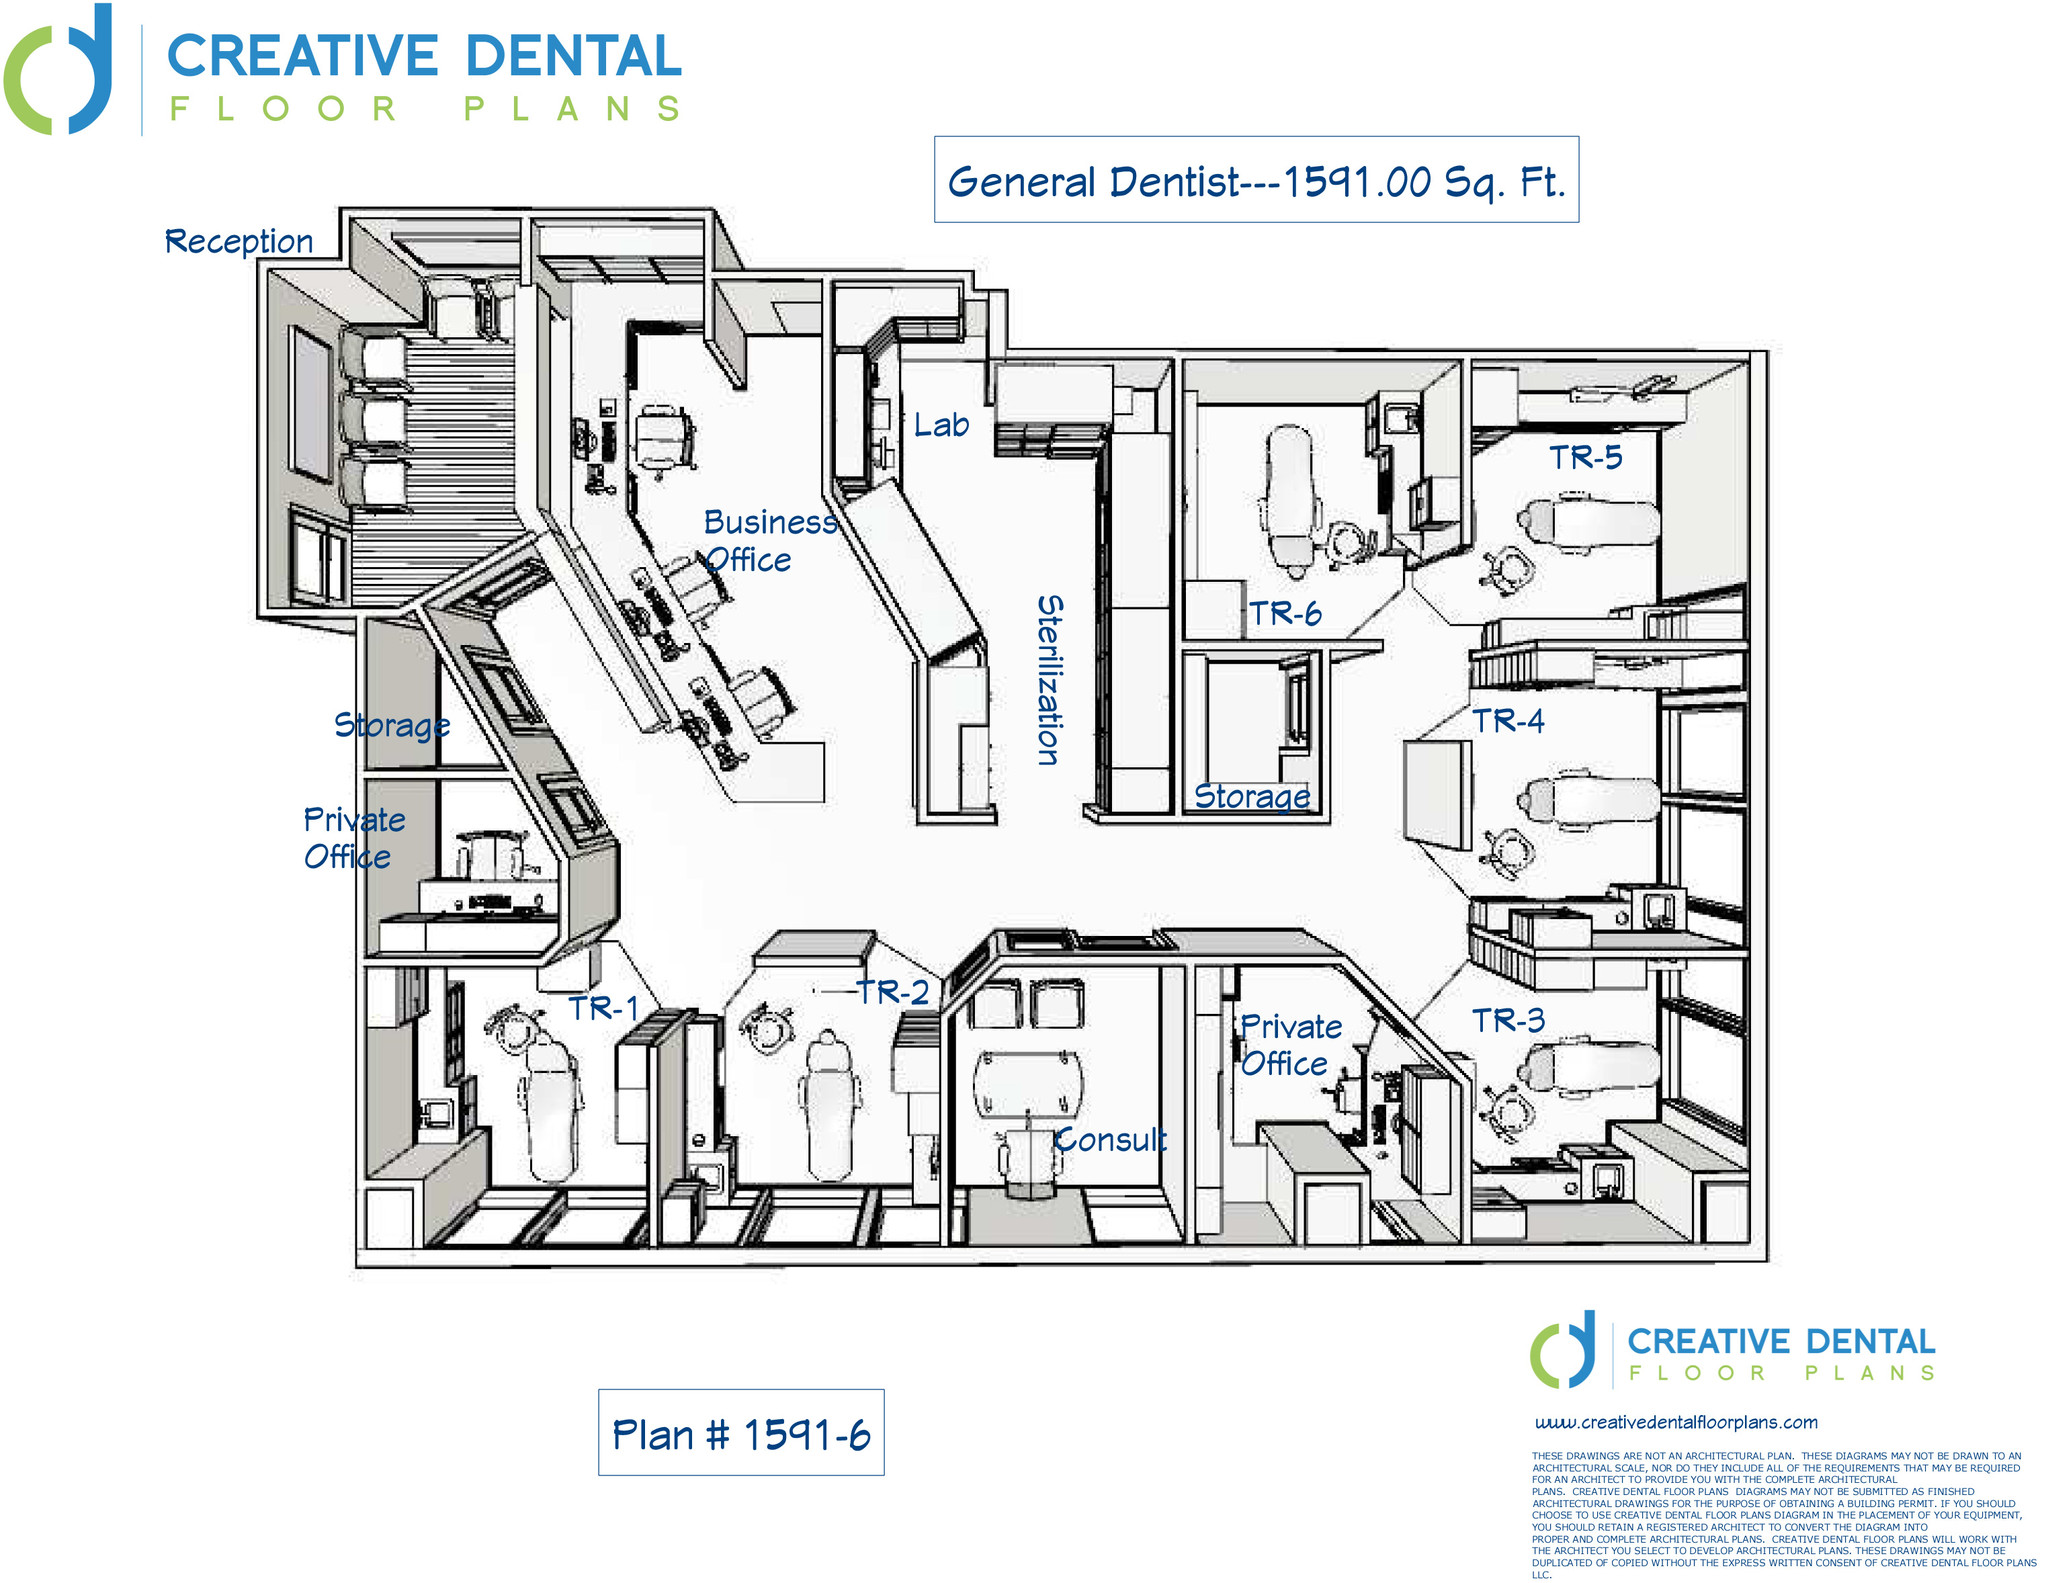 office floor layout. Dental Office Design - General Dentist Floor Plans Layout